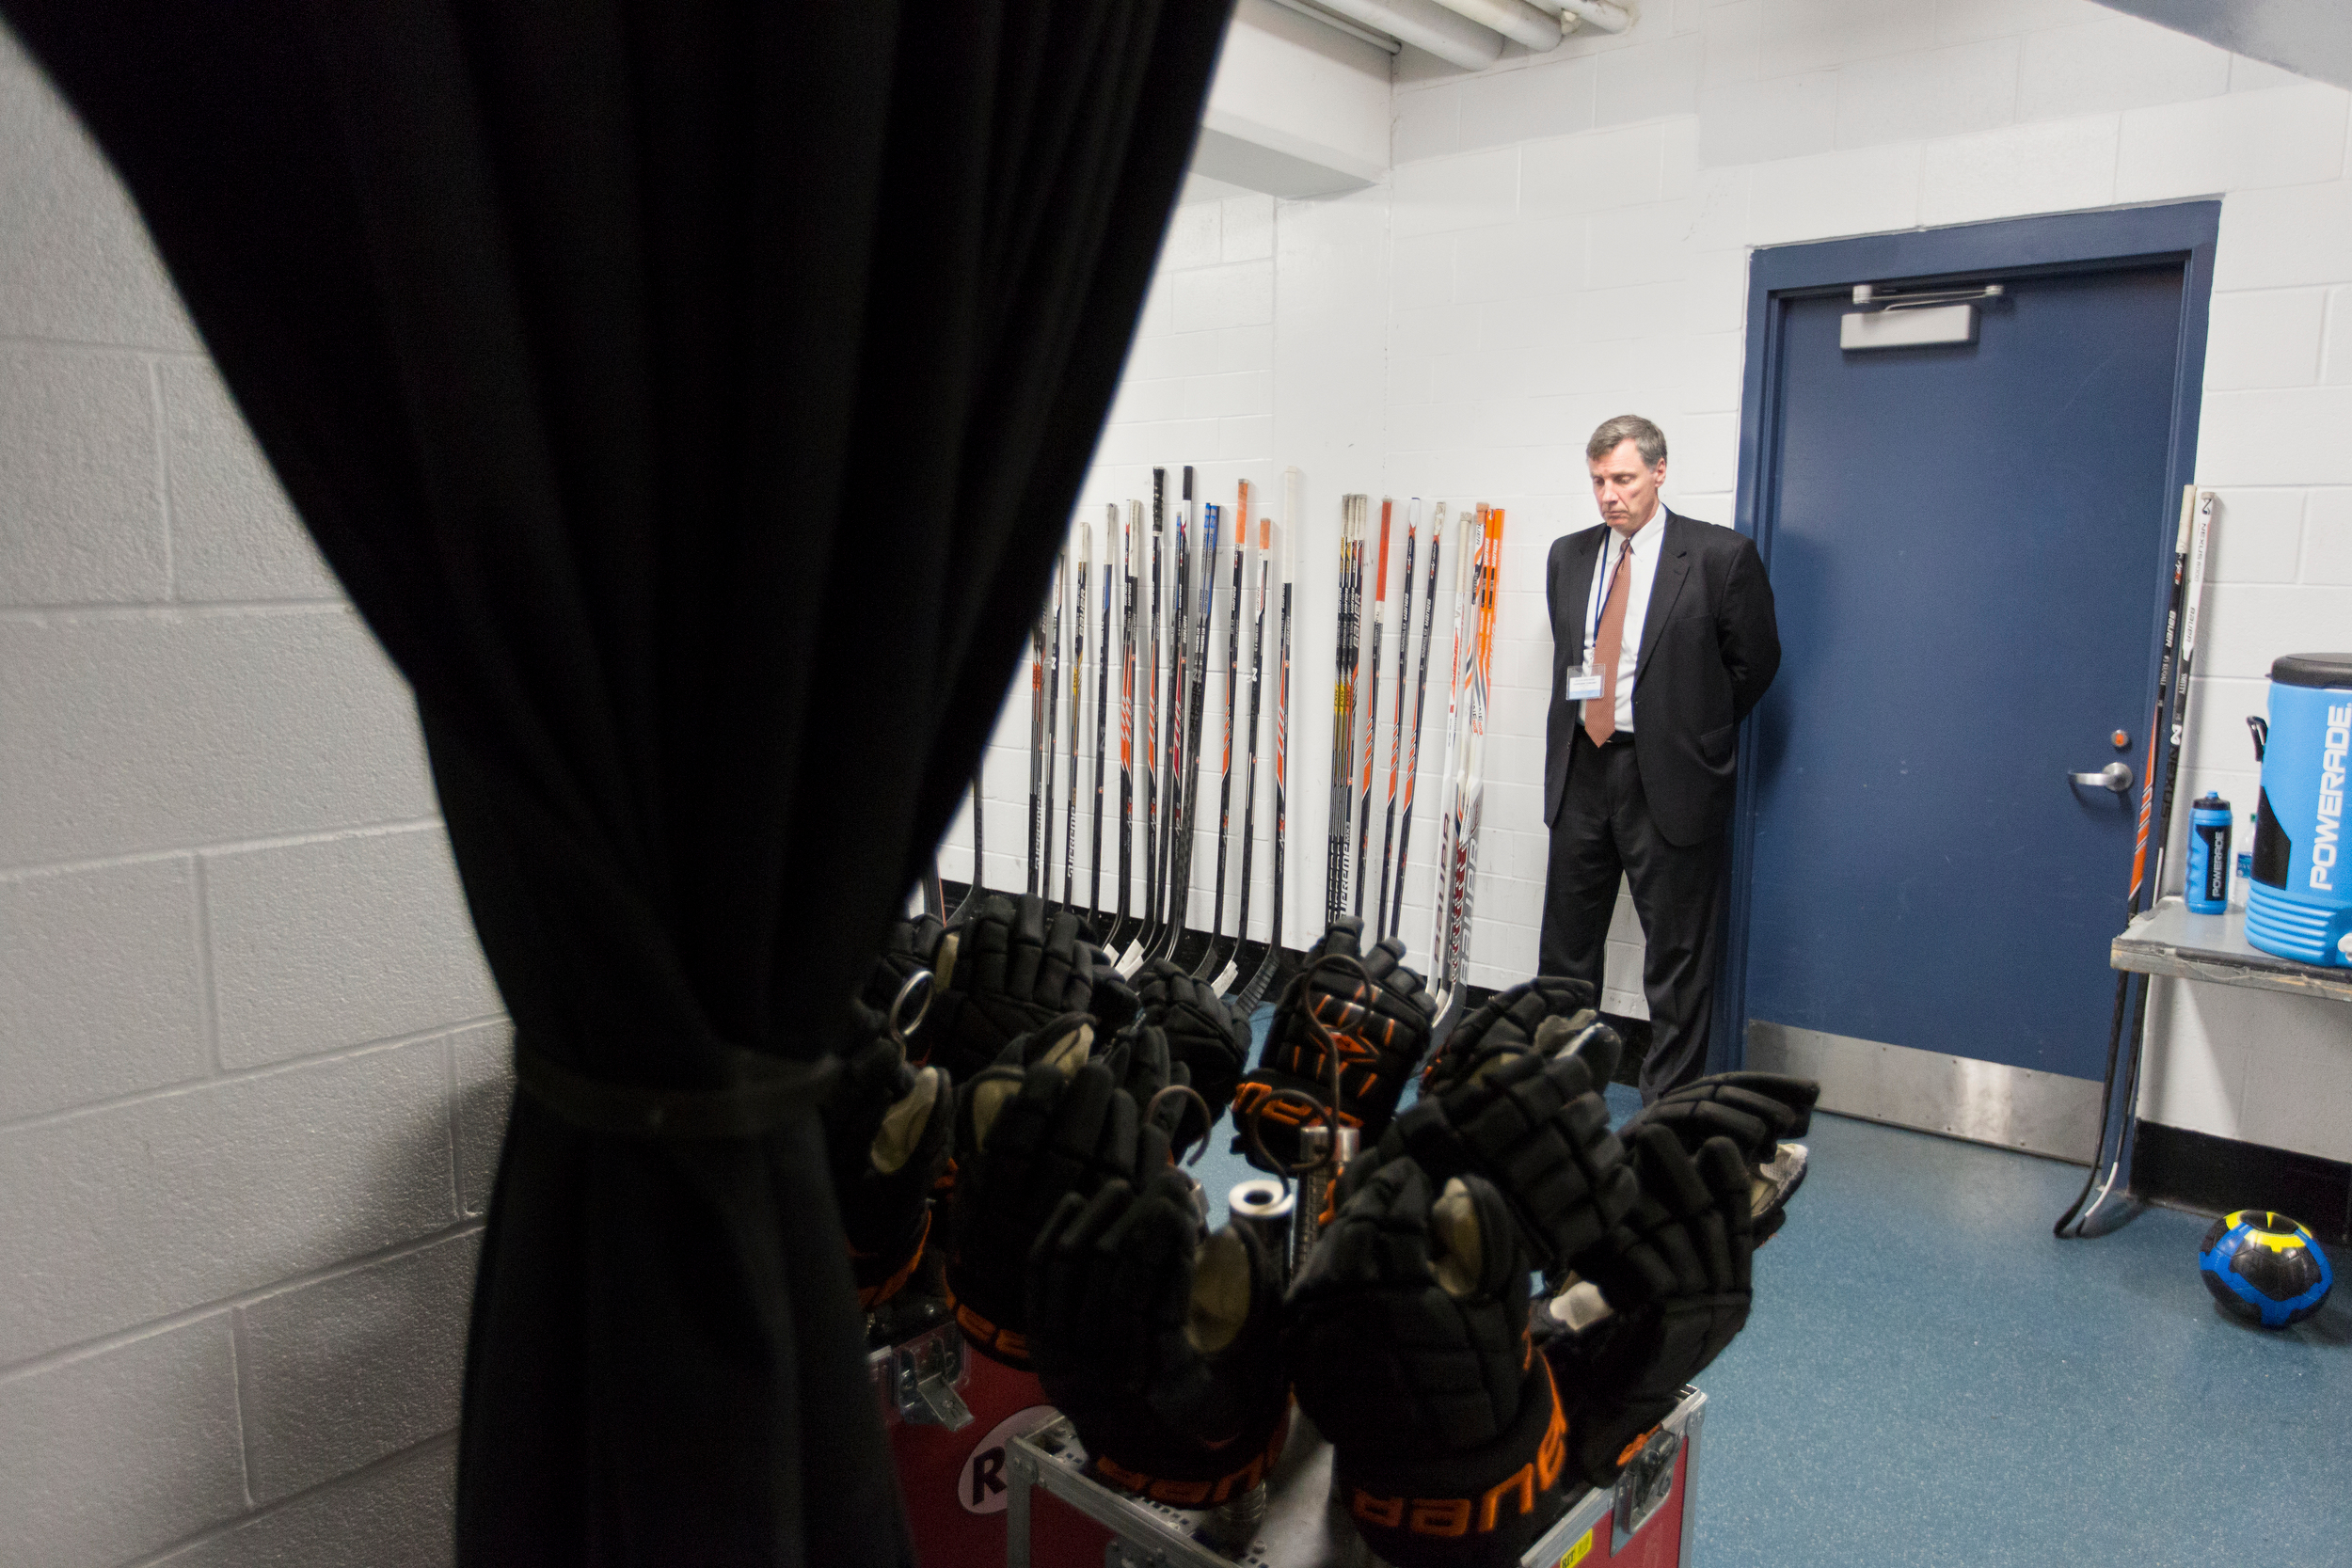 "Wayne Wilson, head coach of Rochester Institute of Technology men's hockey team, stands in a hallway before the Atlantic Hockey Conference championship hockey game against Mercyhurst University at Blue Cross Arena on March  21, 2015 in Rochester, N.Y. ""It feels great to be back (into the championship game),"" said Wilson."